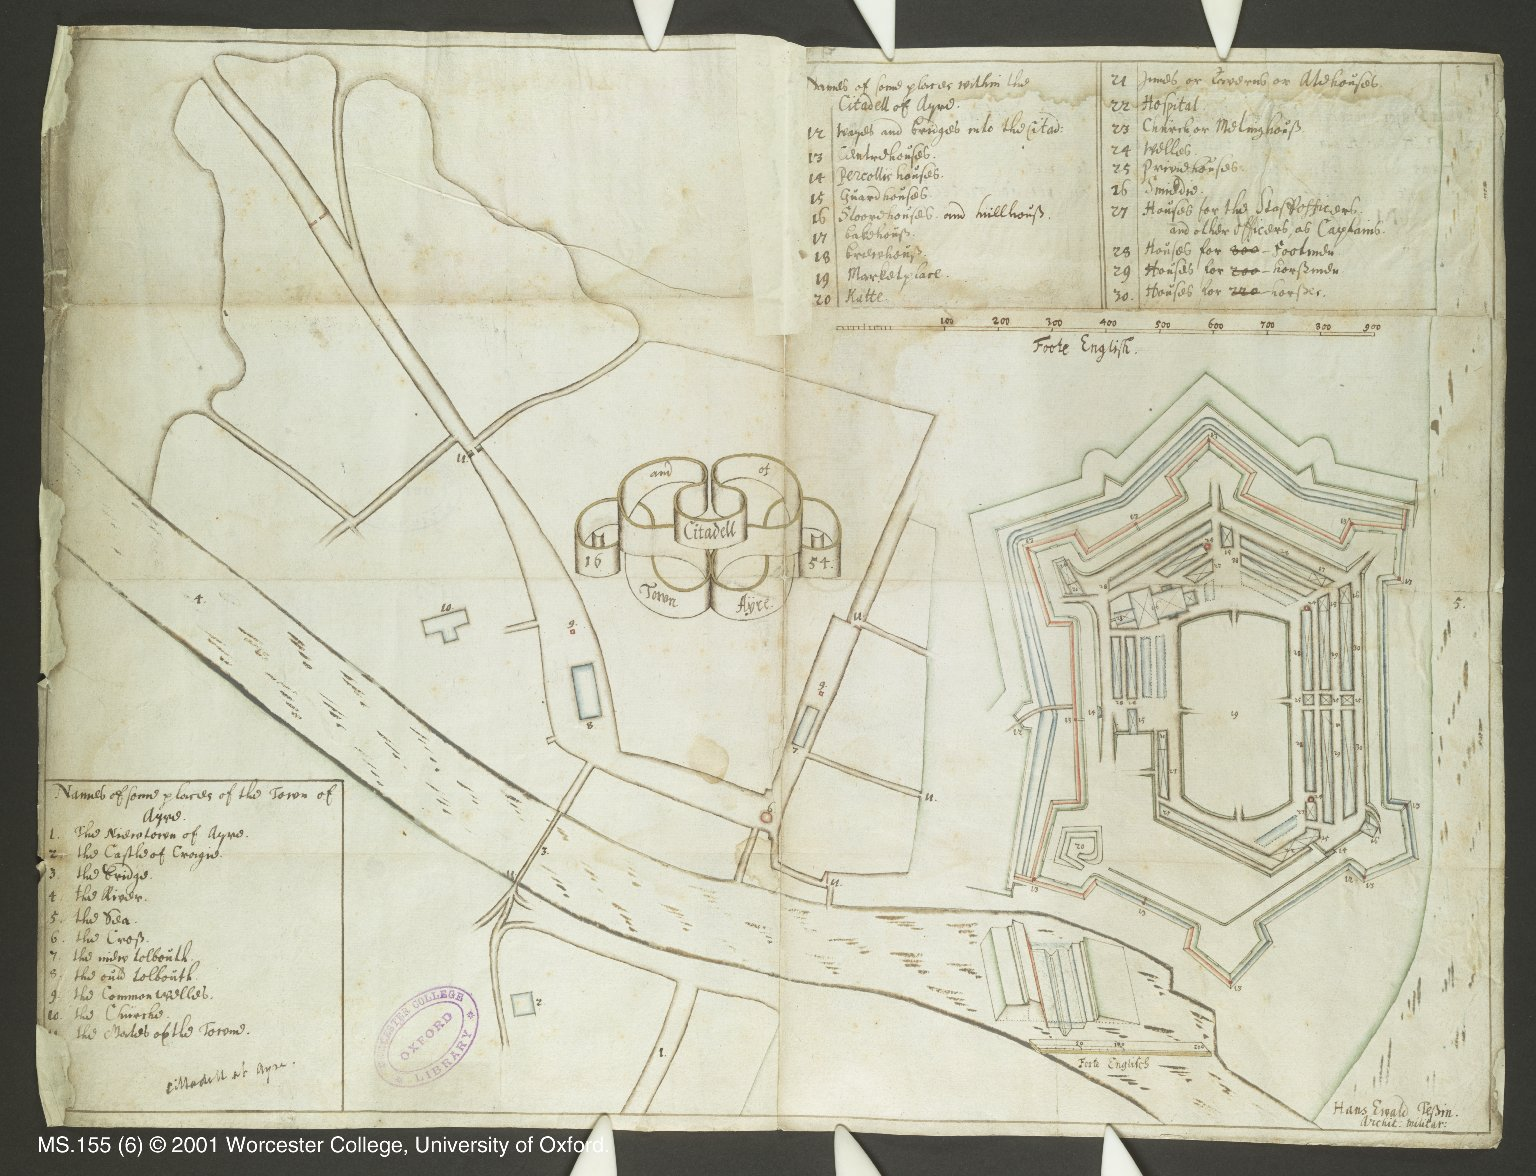 Town and Citadell of Ayre. 1654. [1 of 1]